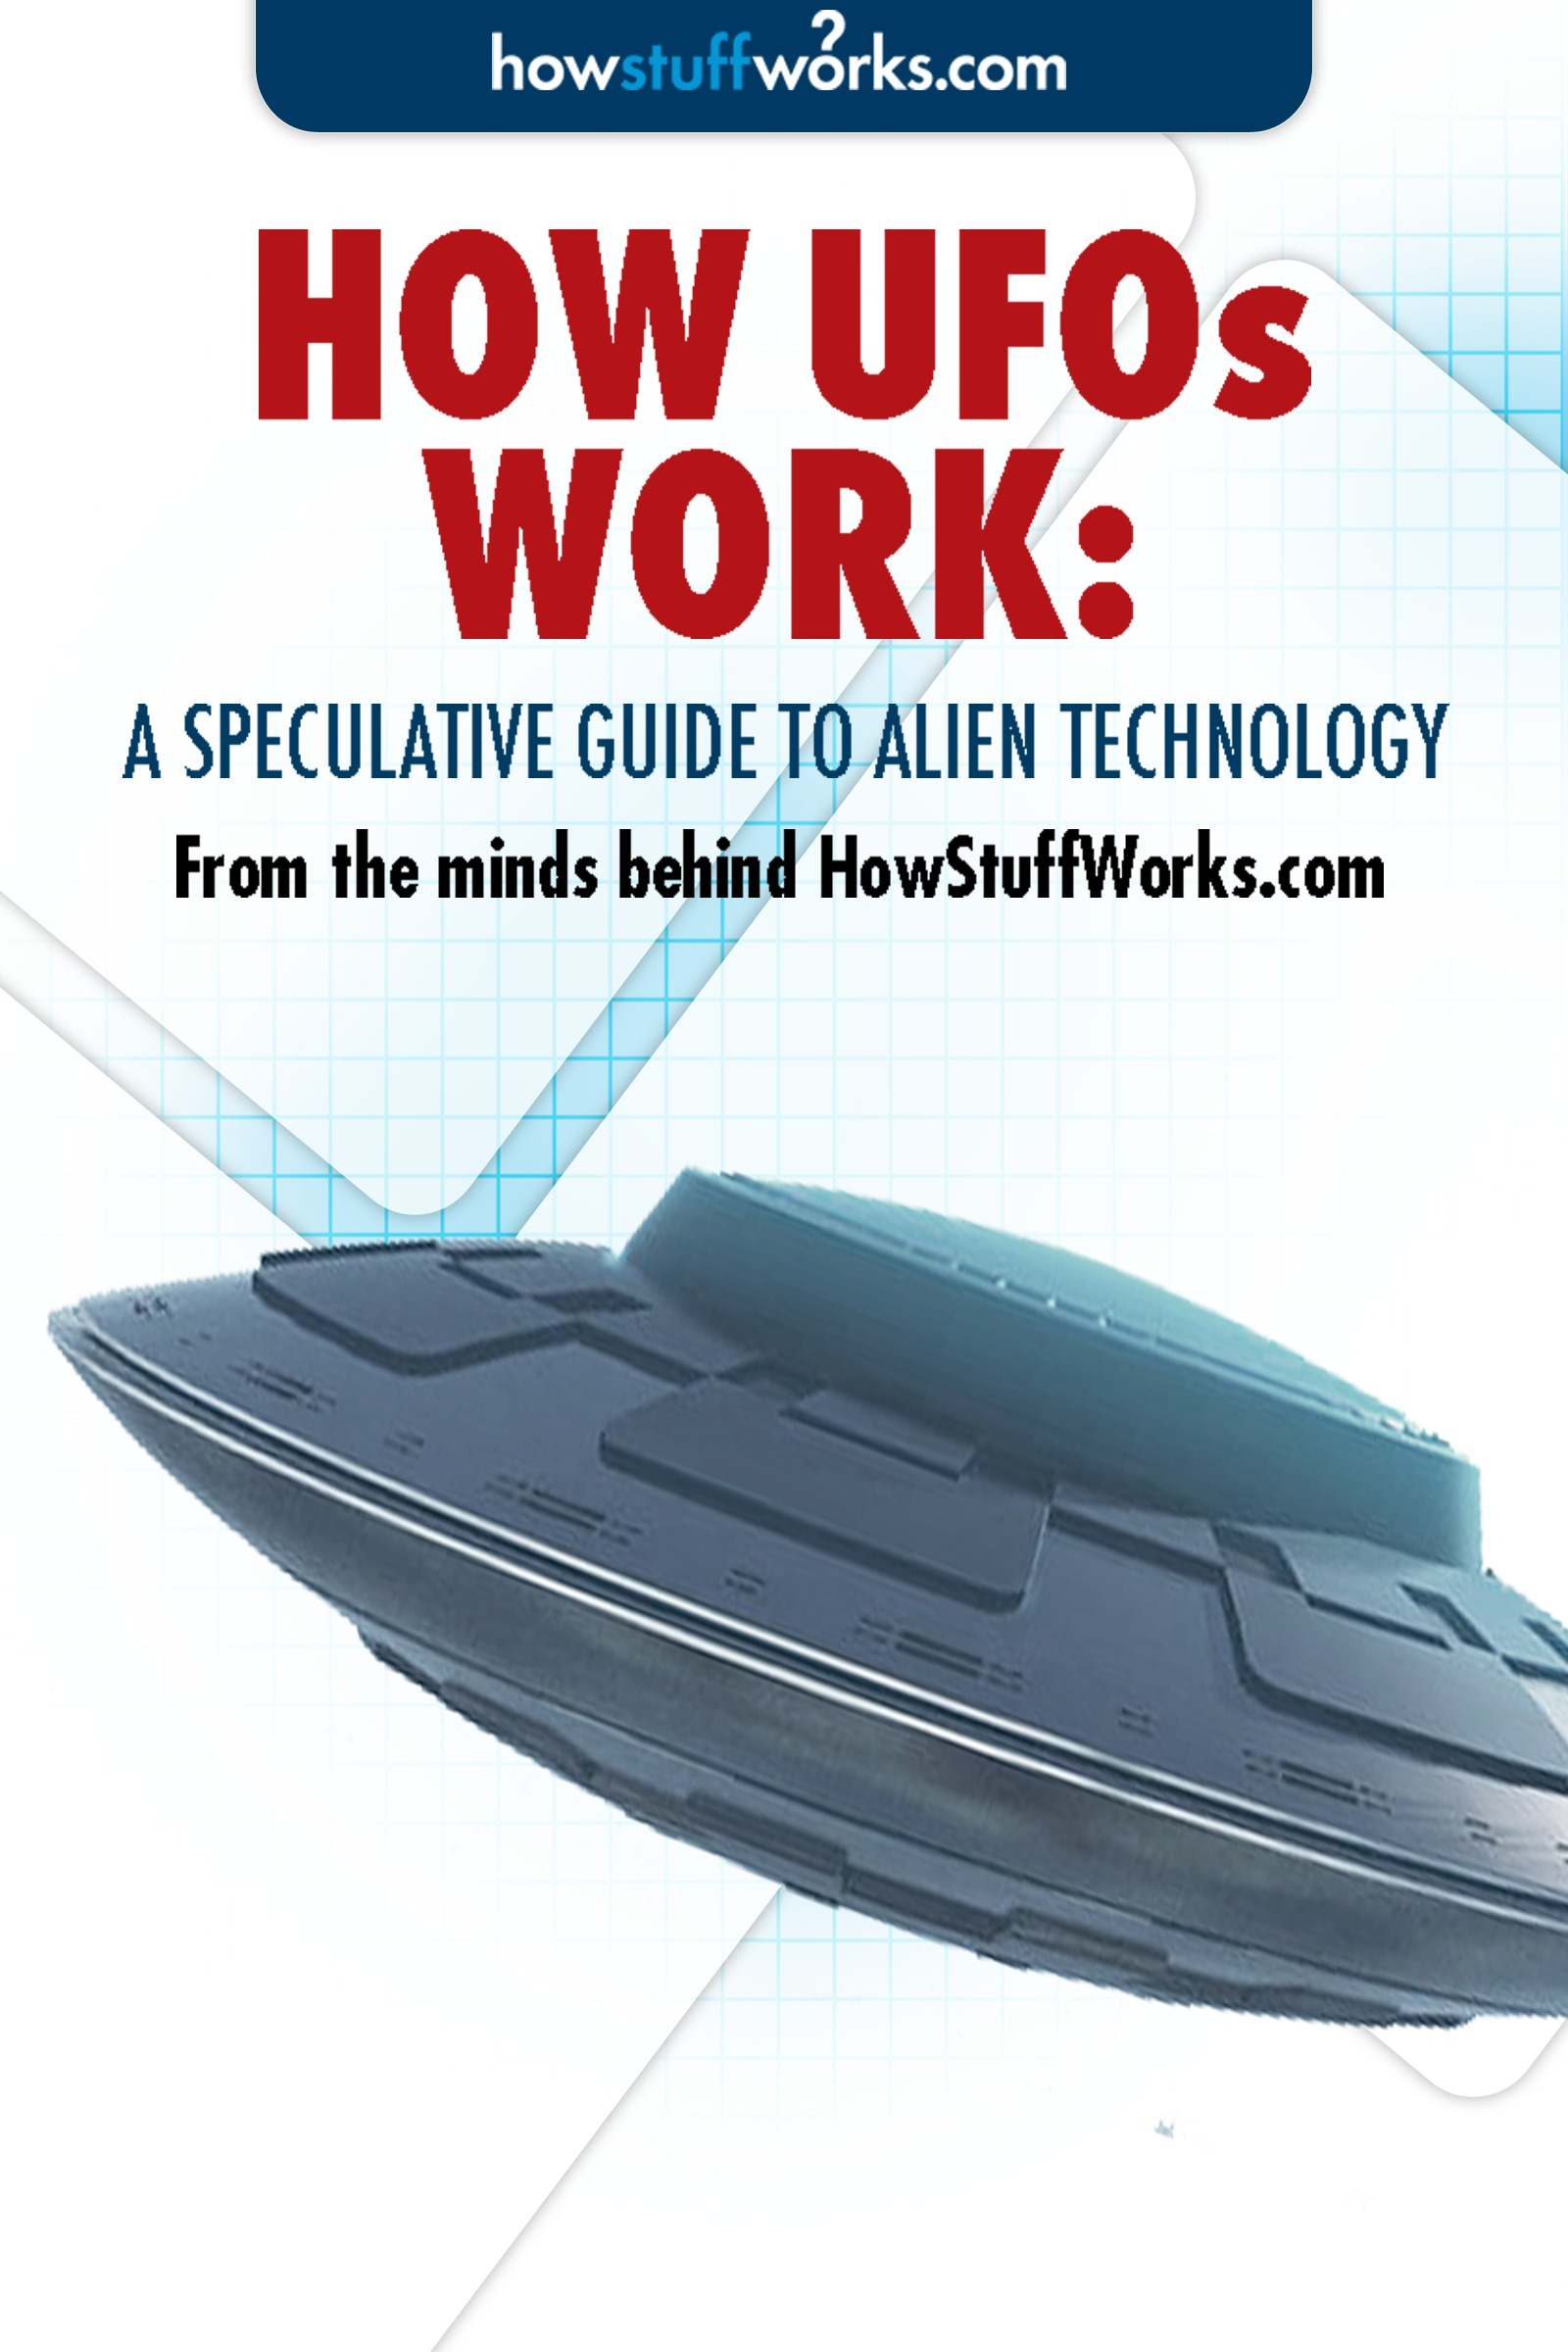 How UFOs Work: A Speculative Guide to Alien Technology